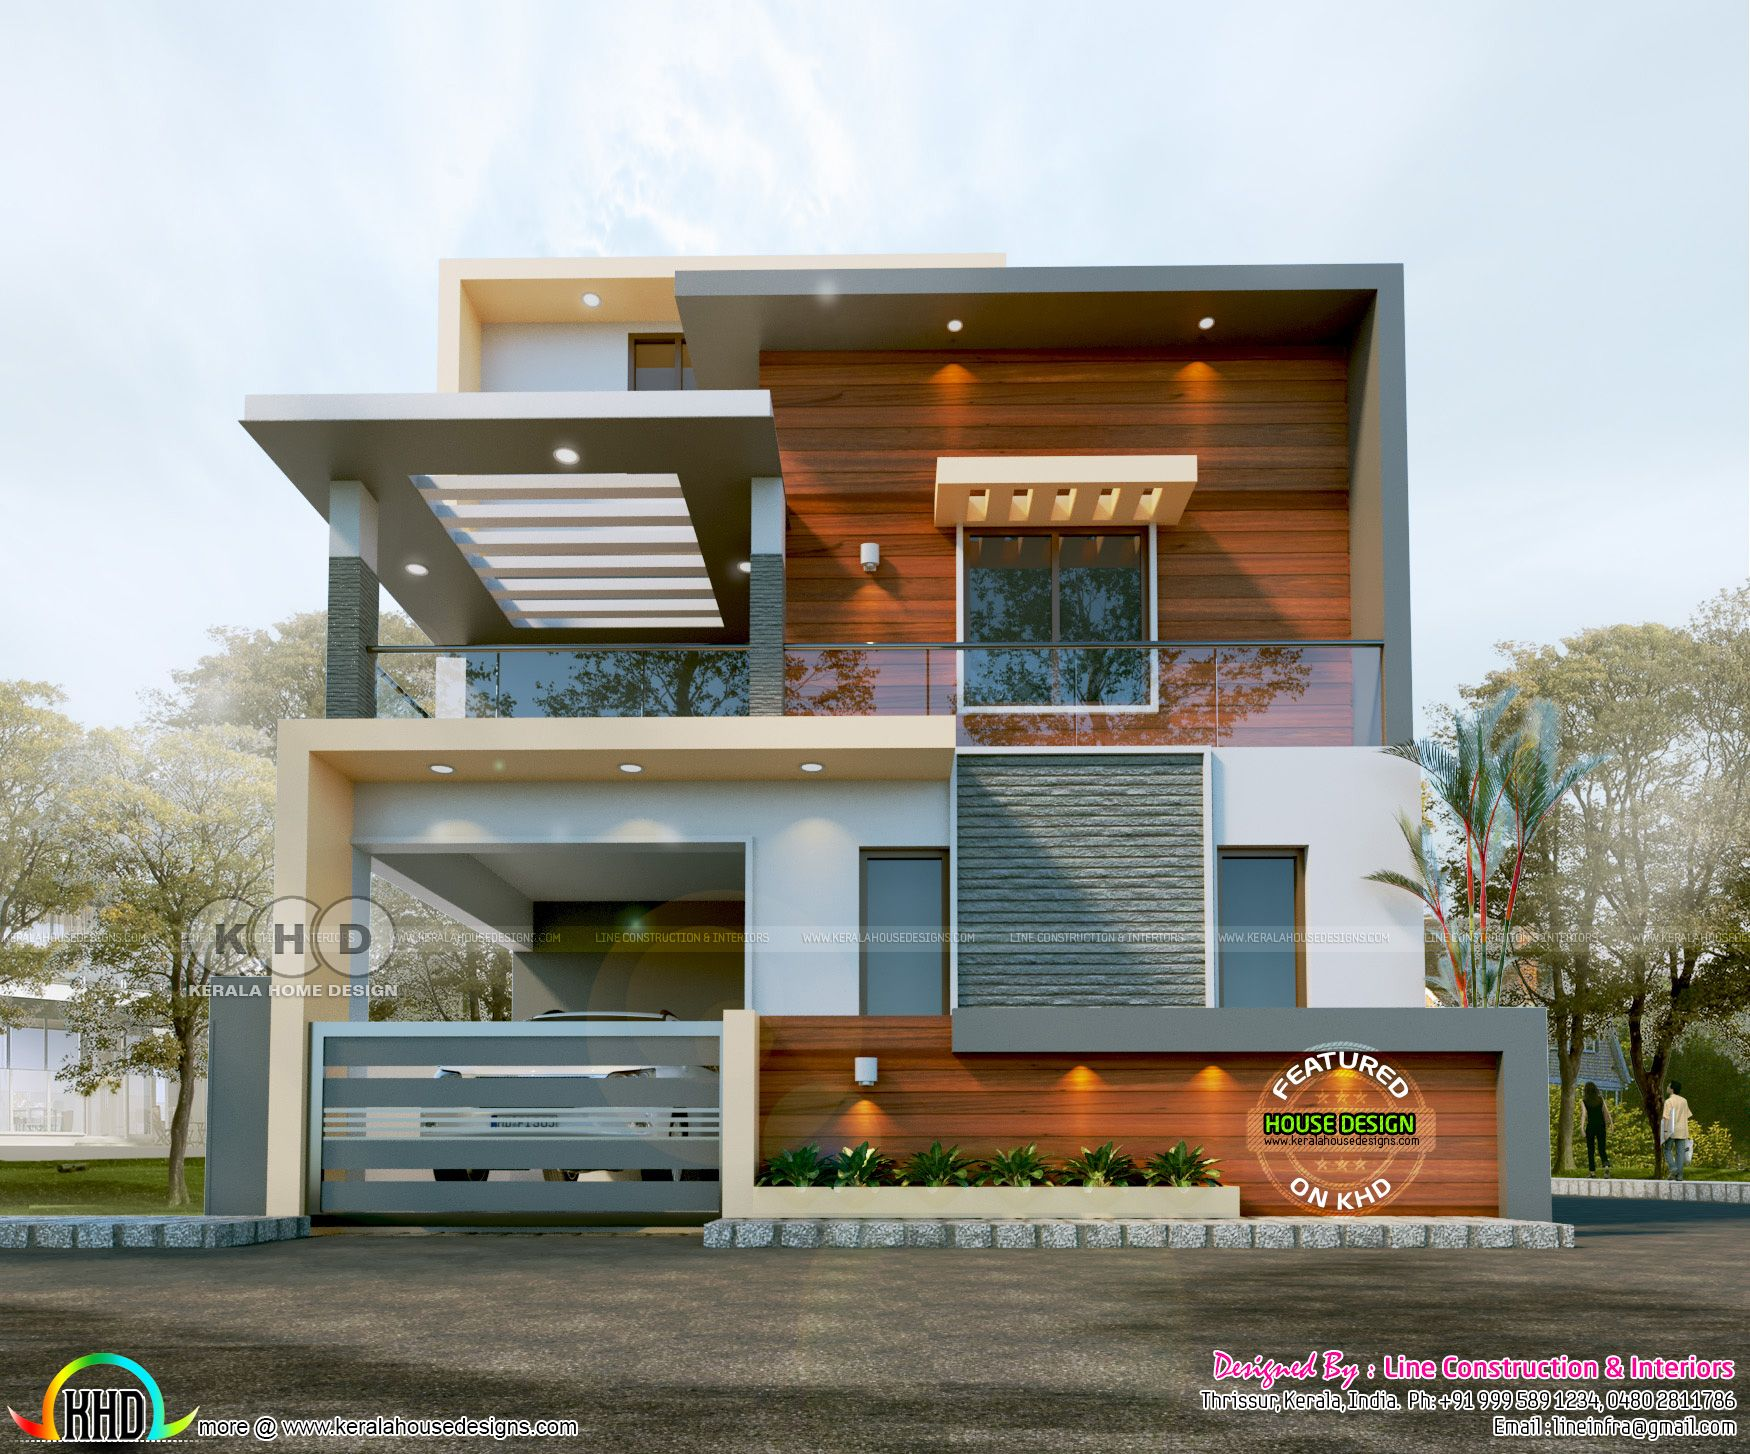 1624 Sq Ft 3 Bedroom Contemporary House In 2 Different Looks Modern Exterior House Designs Duplex House Design Bungalow House Design